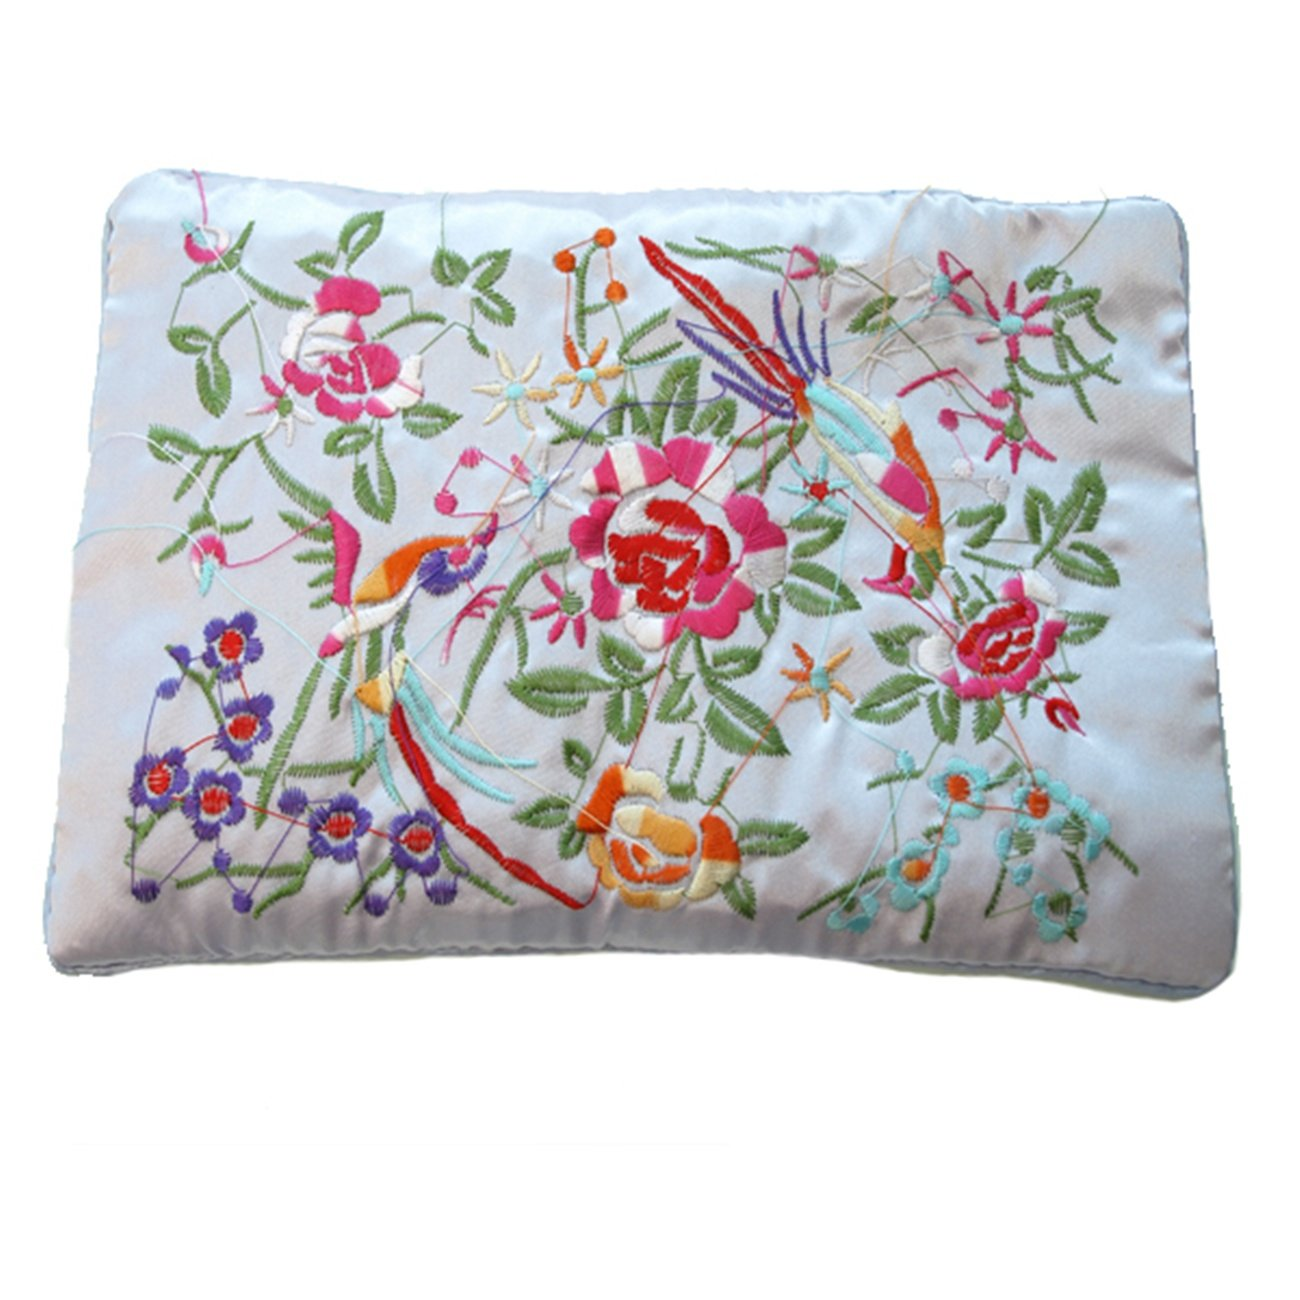 Wrapables Silk Embroidered Brocade Jewelry Travel Organizer Rolls, Lavender